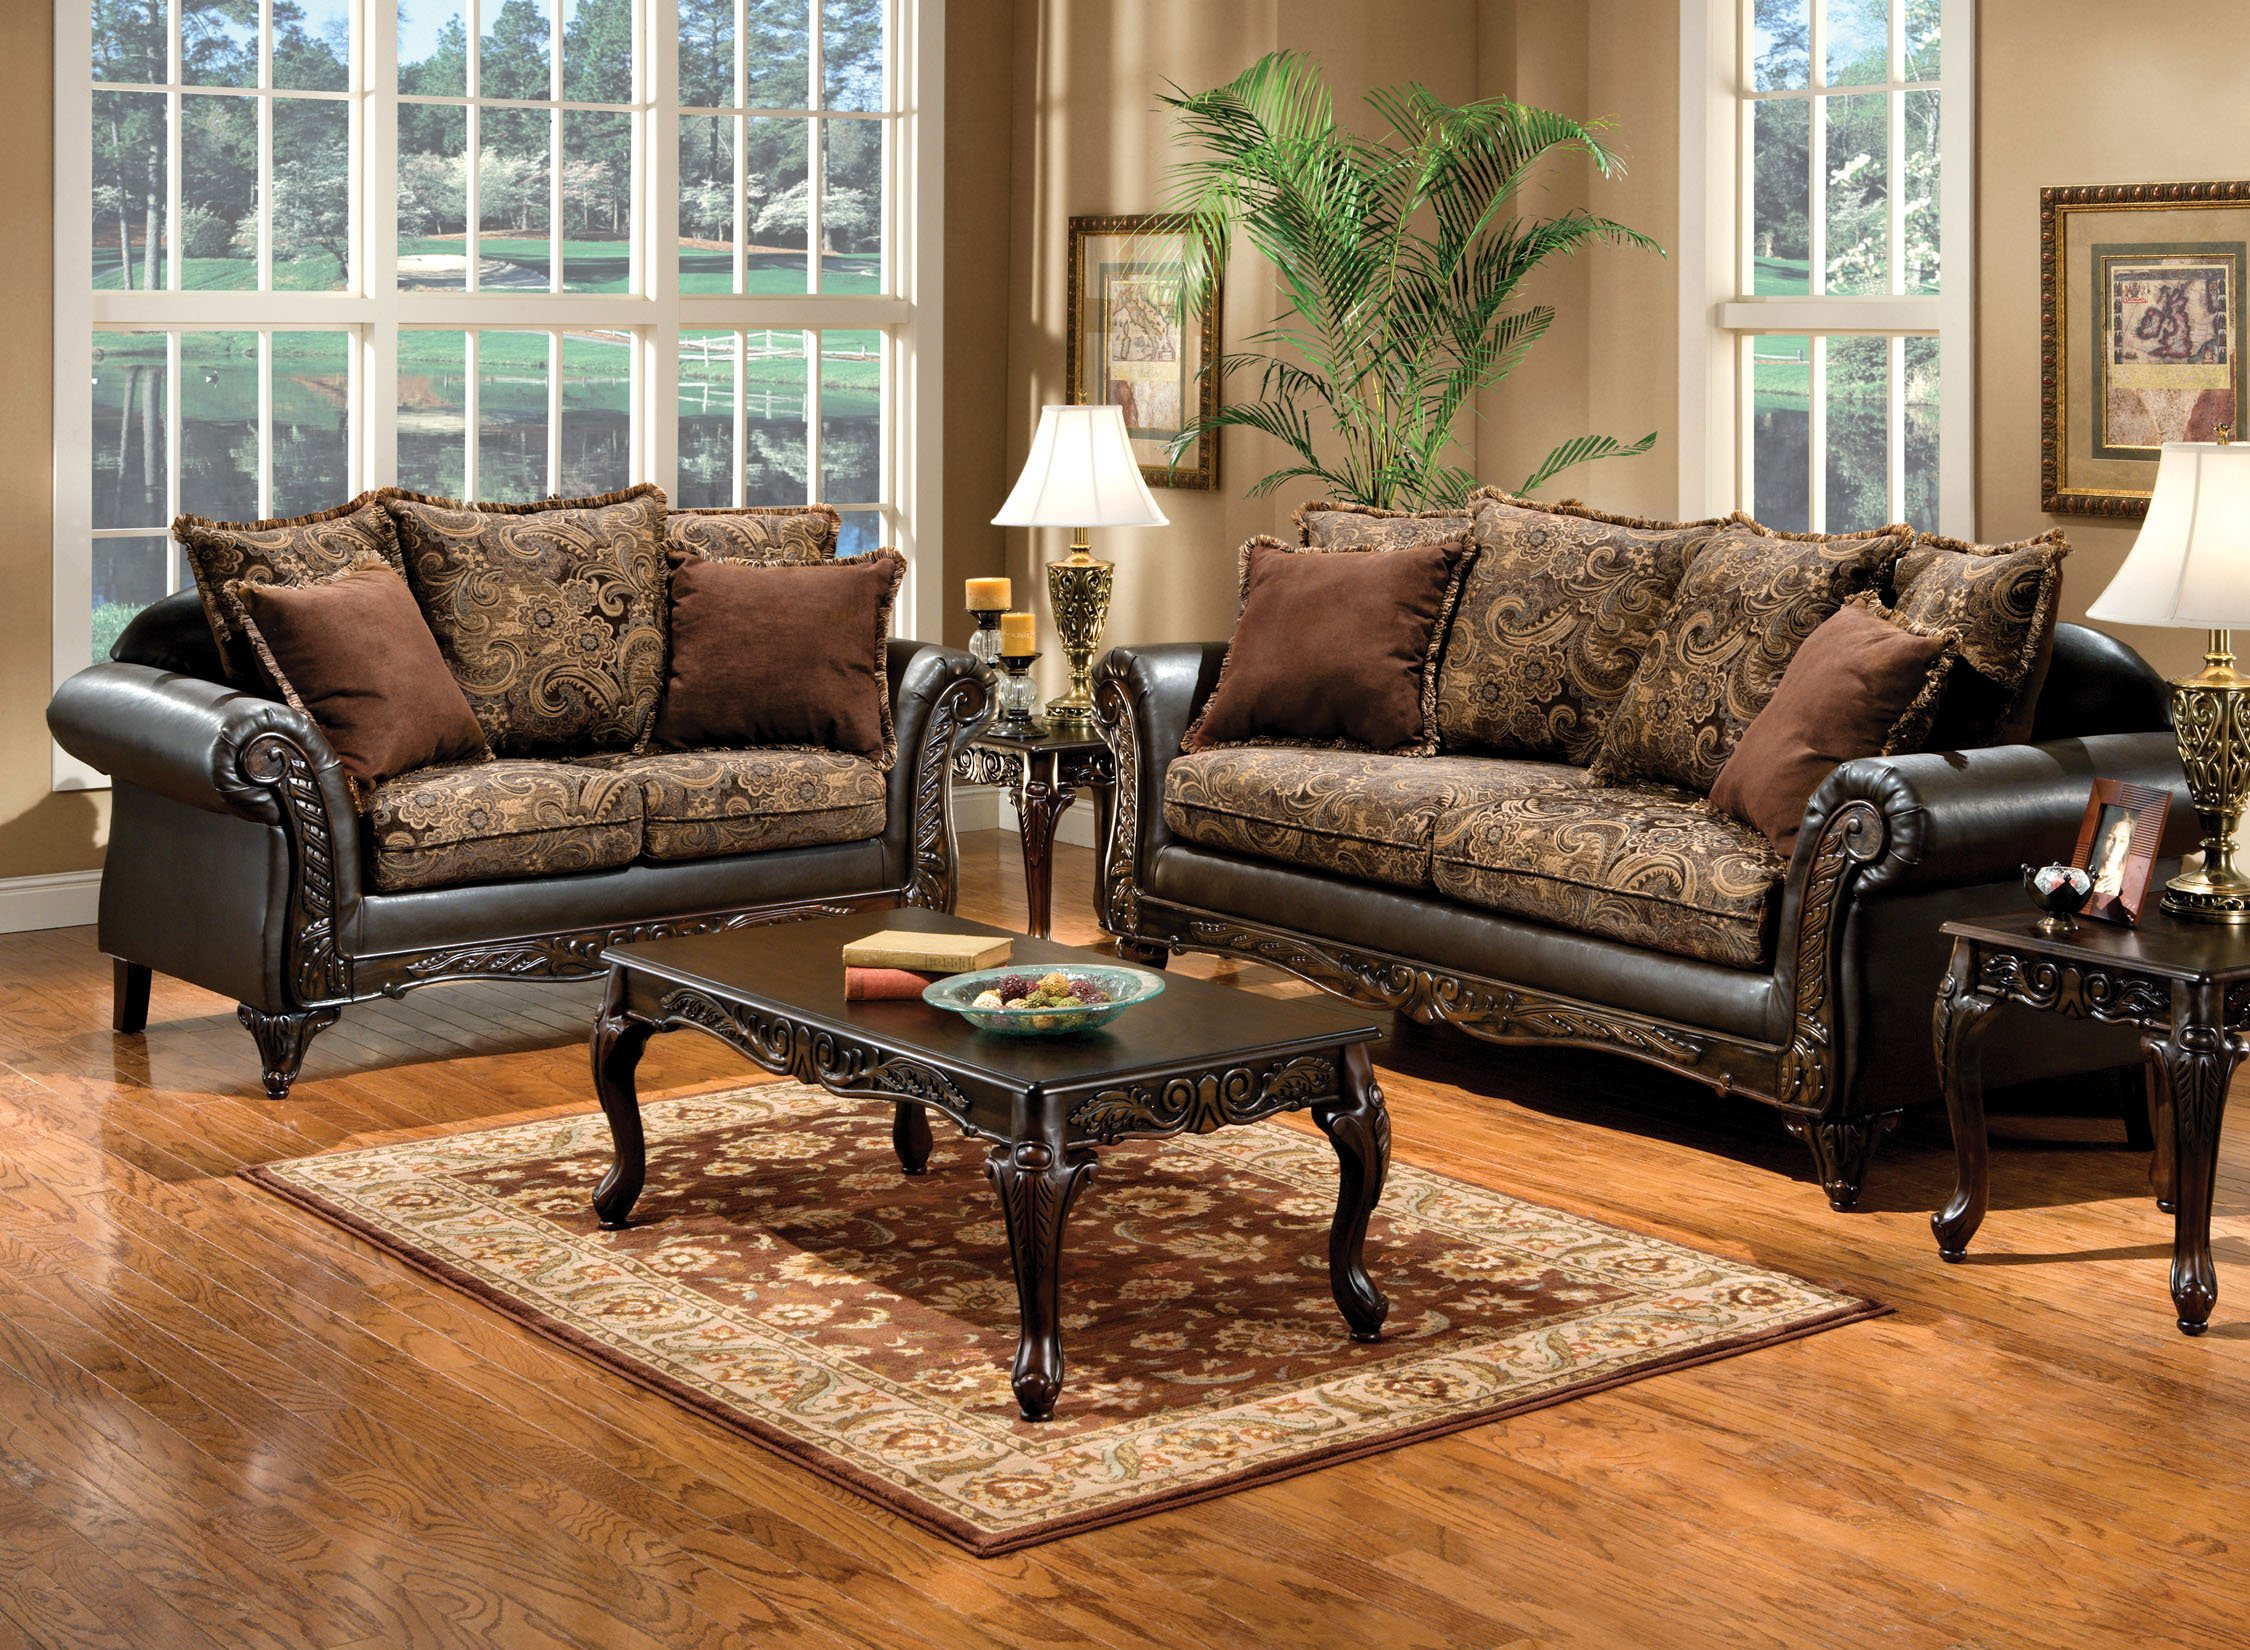 Furniture of America Inigo 2-Piece Fabric and Leatherette Sofa Set with Accent Pillows and Wood Trim, Dark Brown Floral Print by Furniture of America (Image #2)